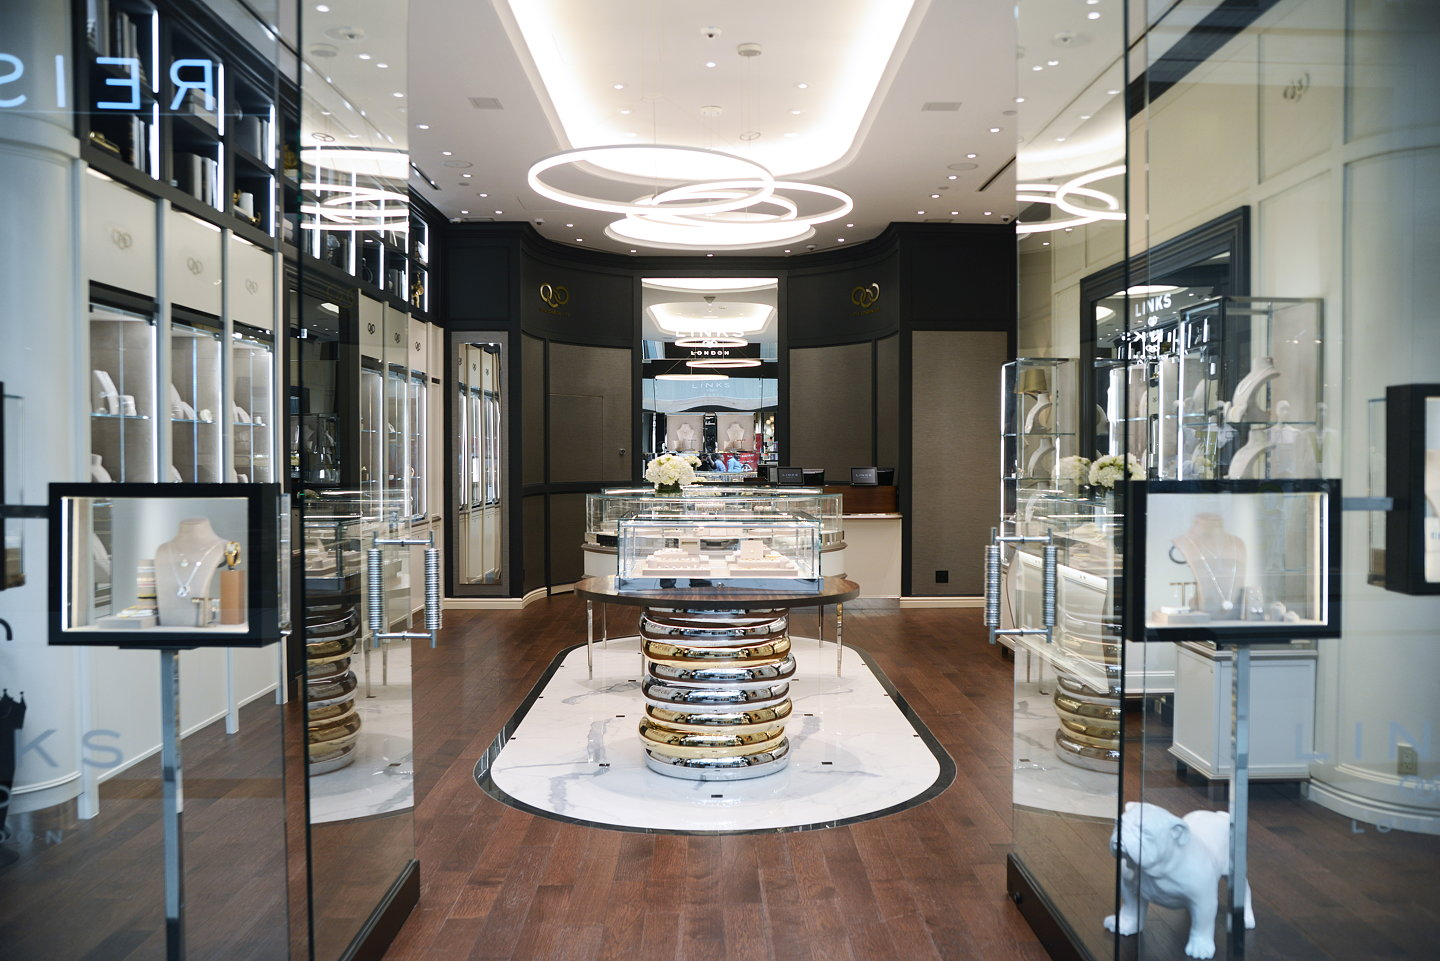 Retail Furniture Sheridanco Creates New Retail Interior Design For Links Of London